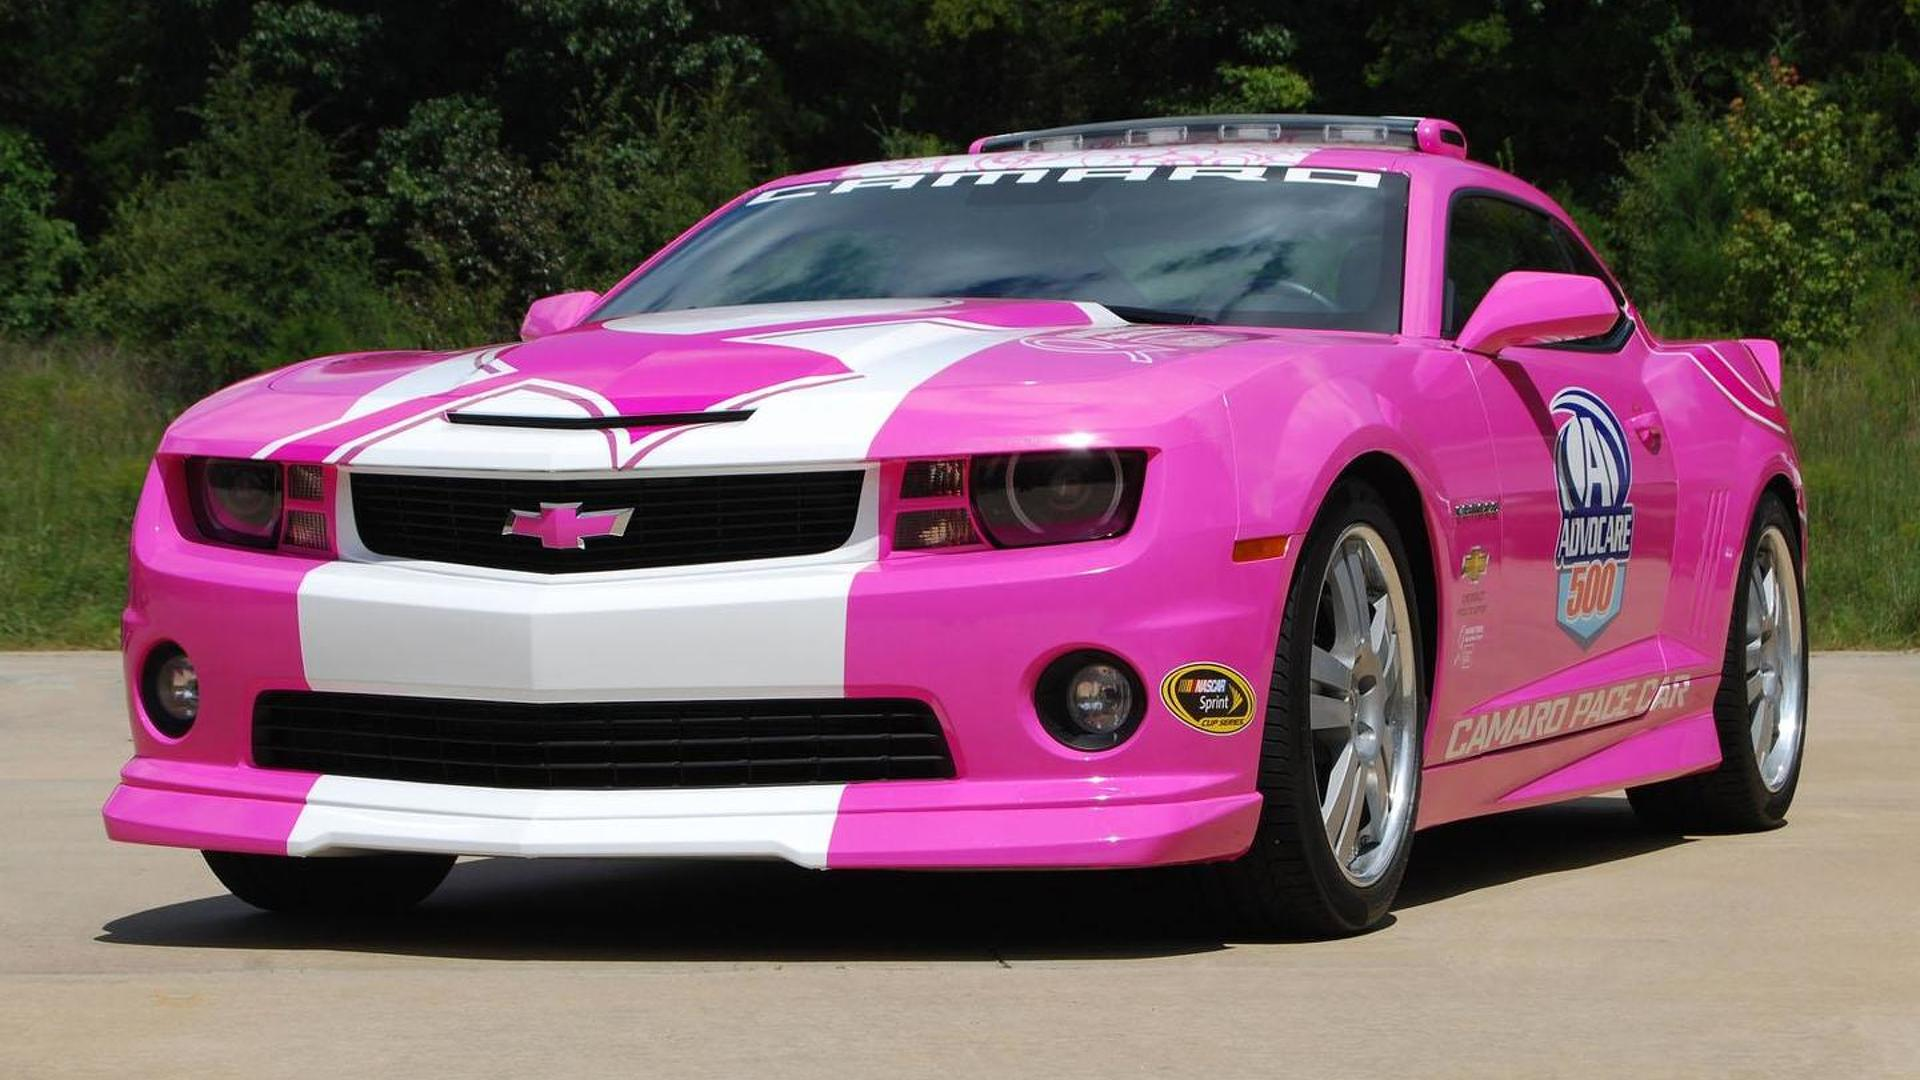 Chevrolet Camaro pace car goes pink for a cause